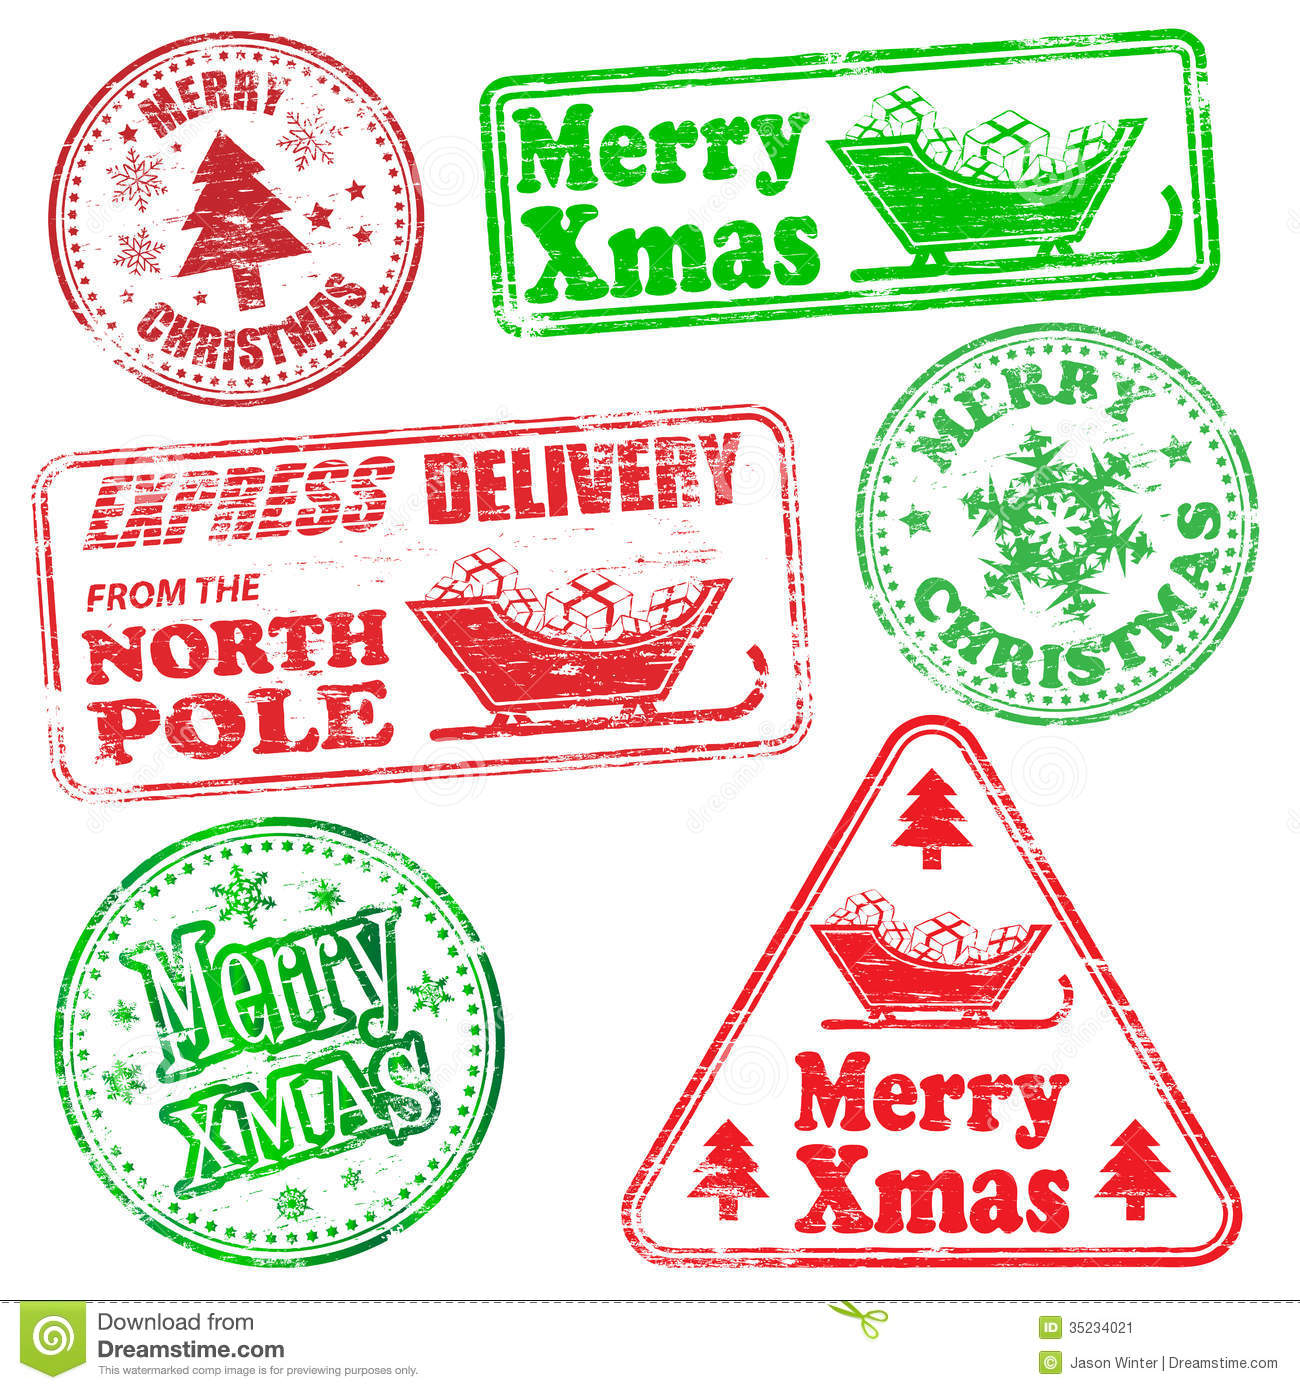 merry christmas rubber stamps - Christmas Stamp